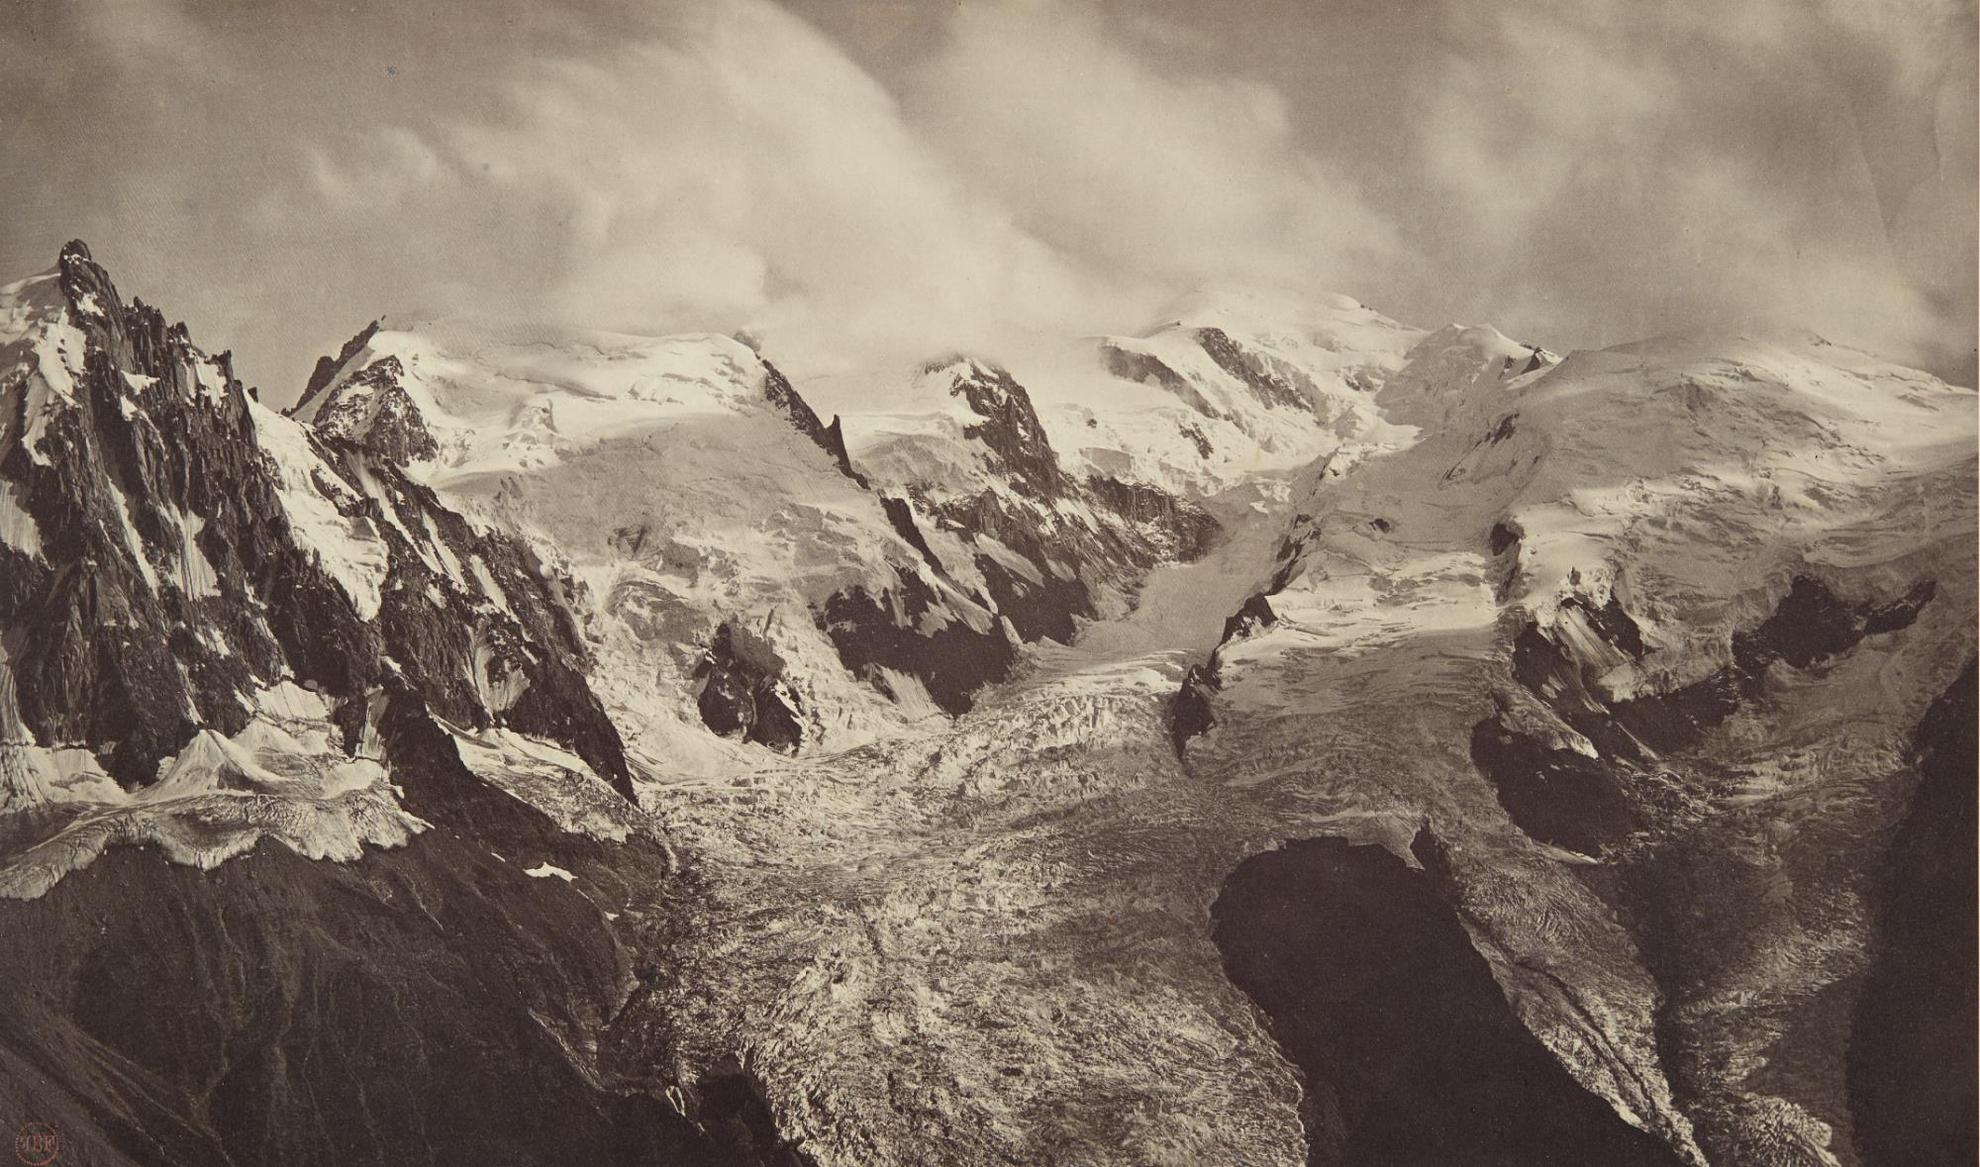 Bisson Freres: Louis-Auguste Bisson And August-Rosalie Bisson - Une Bourrasque Sur Le Mont-Blanc (A Gust Of Wind On Mont Blanc)-1860